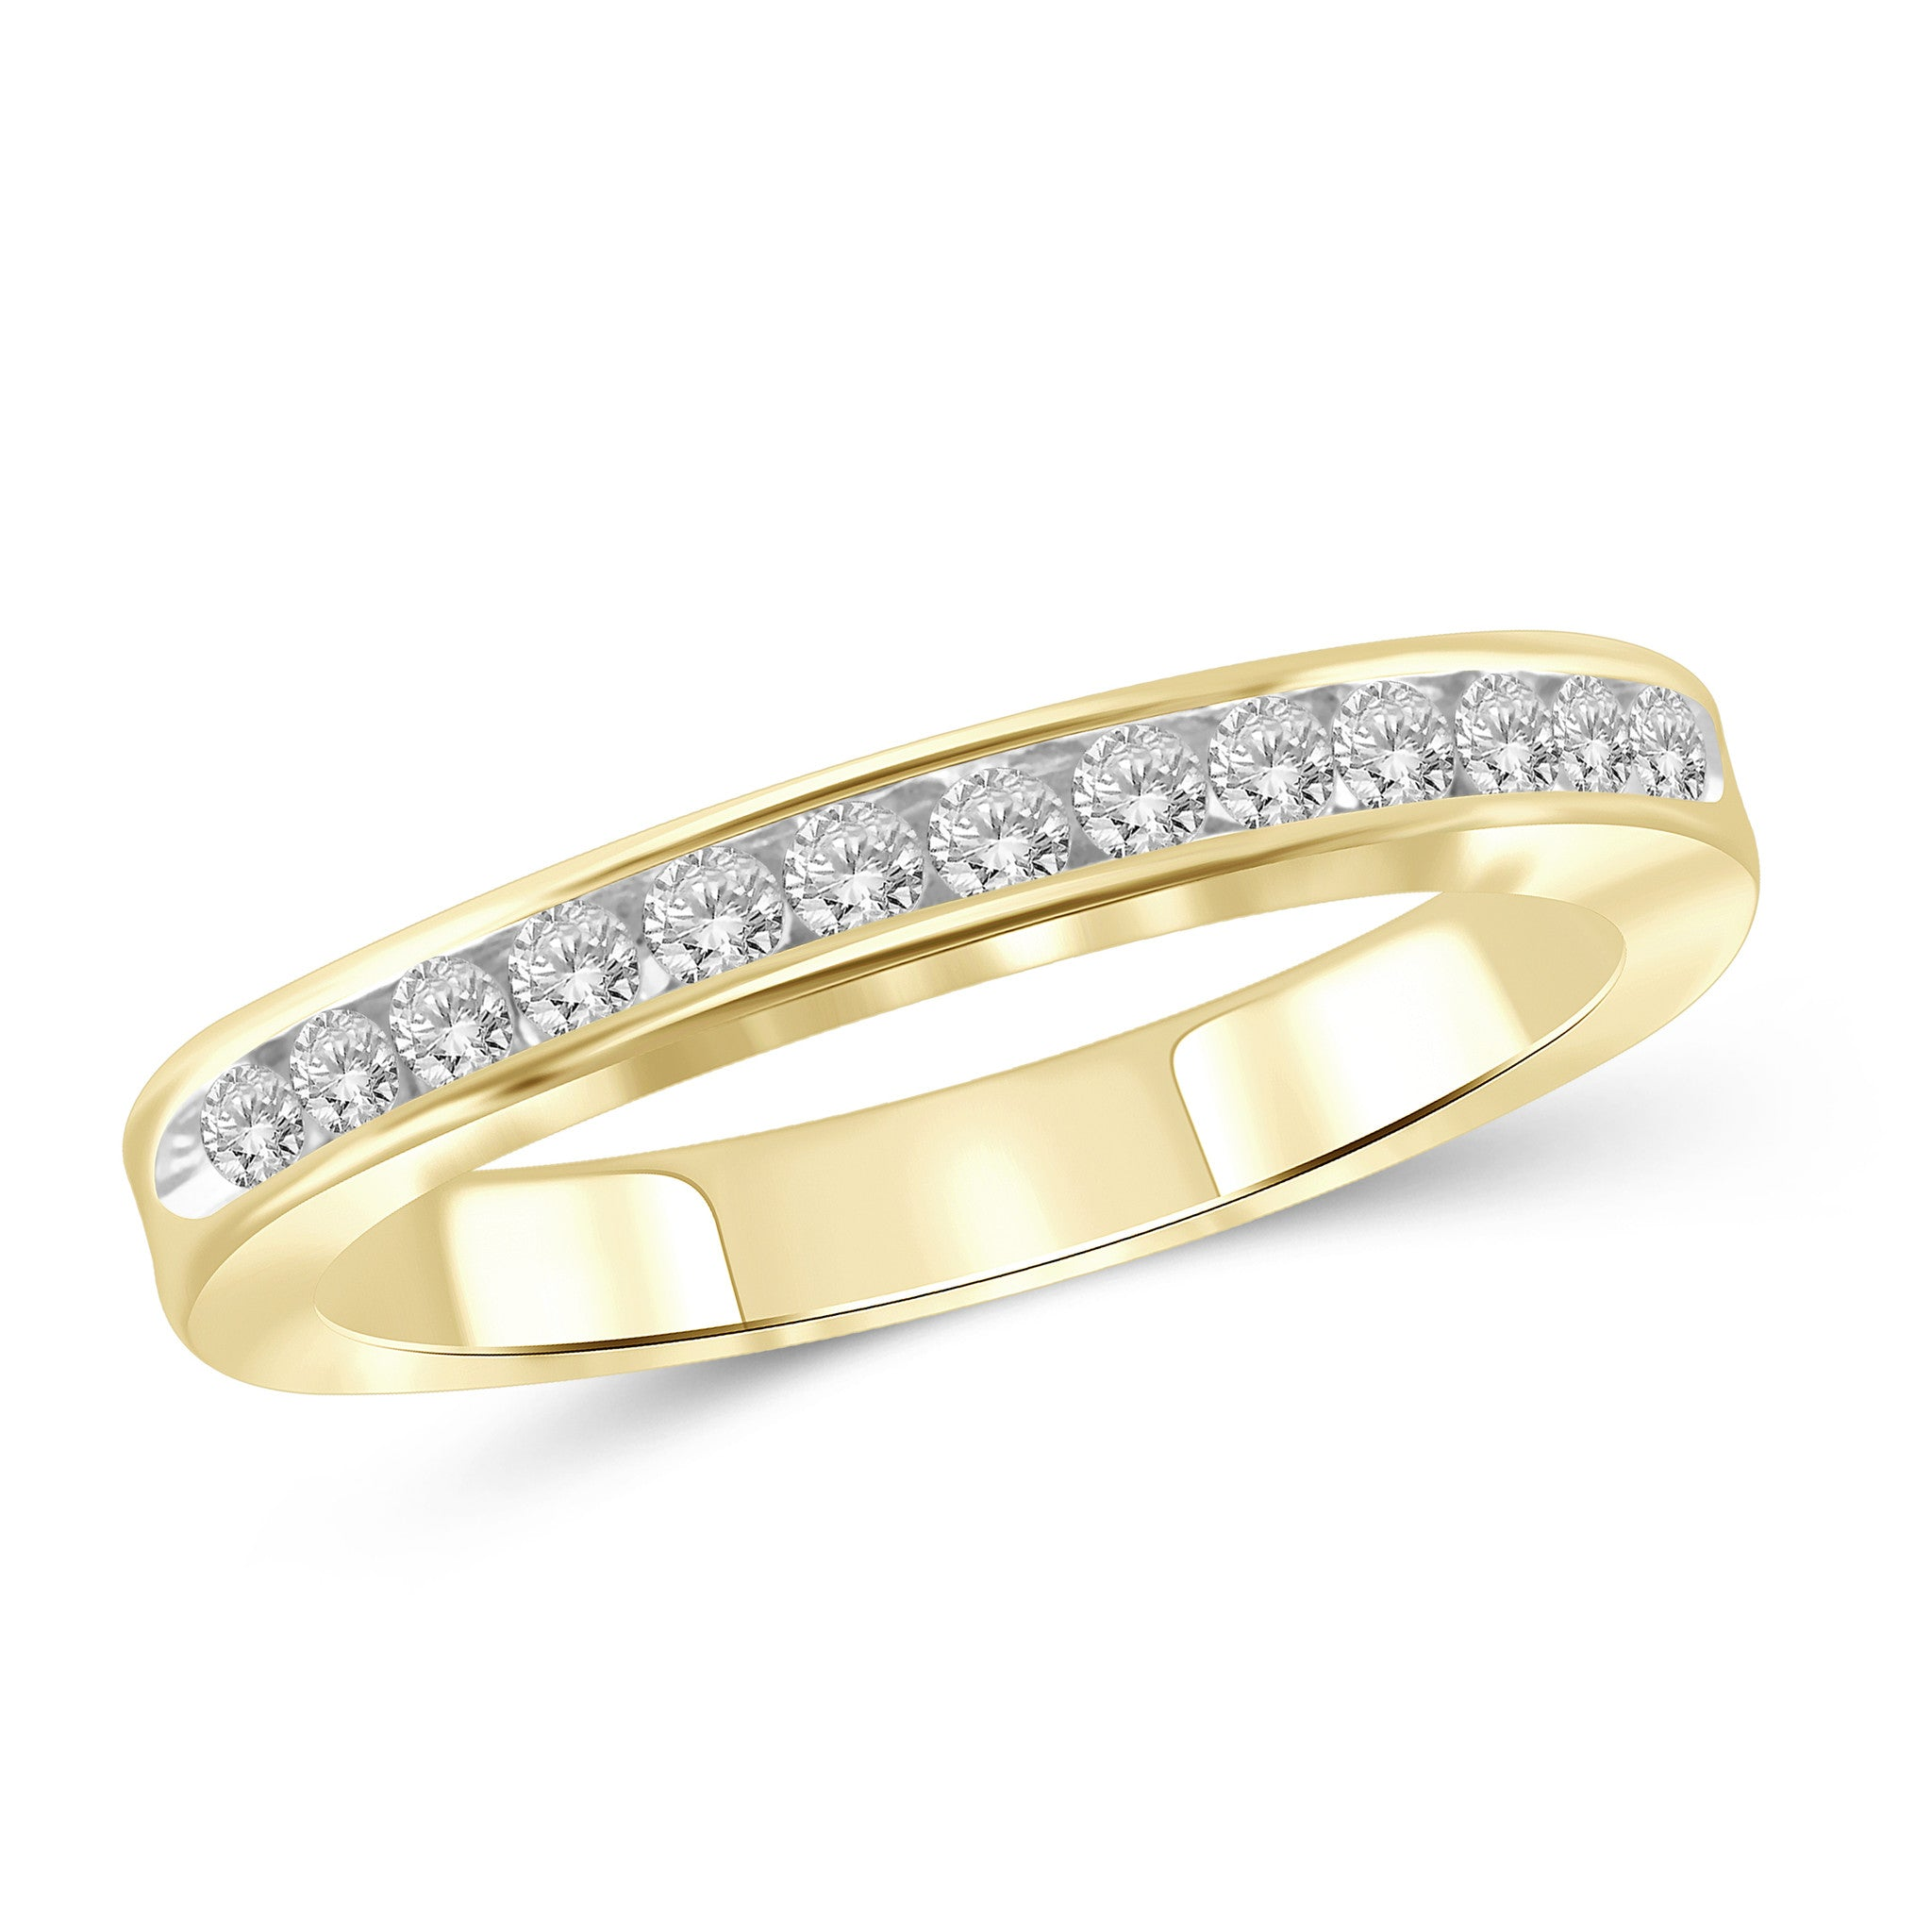 her fine at diamond tesoro available band yc com for bands wedding gold walsonsandco exclusively rings collection jewelry yellow in buy